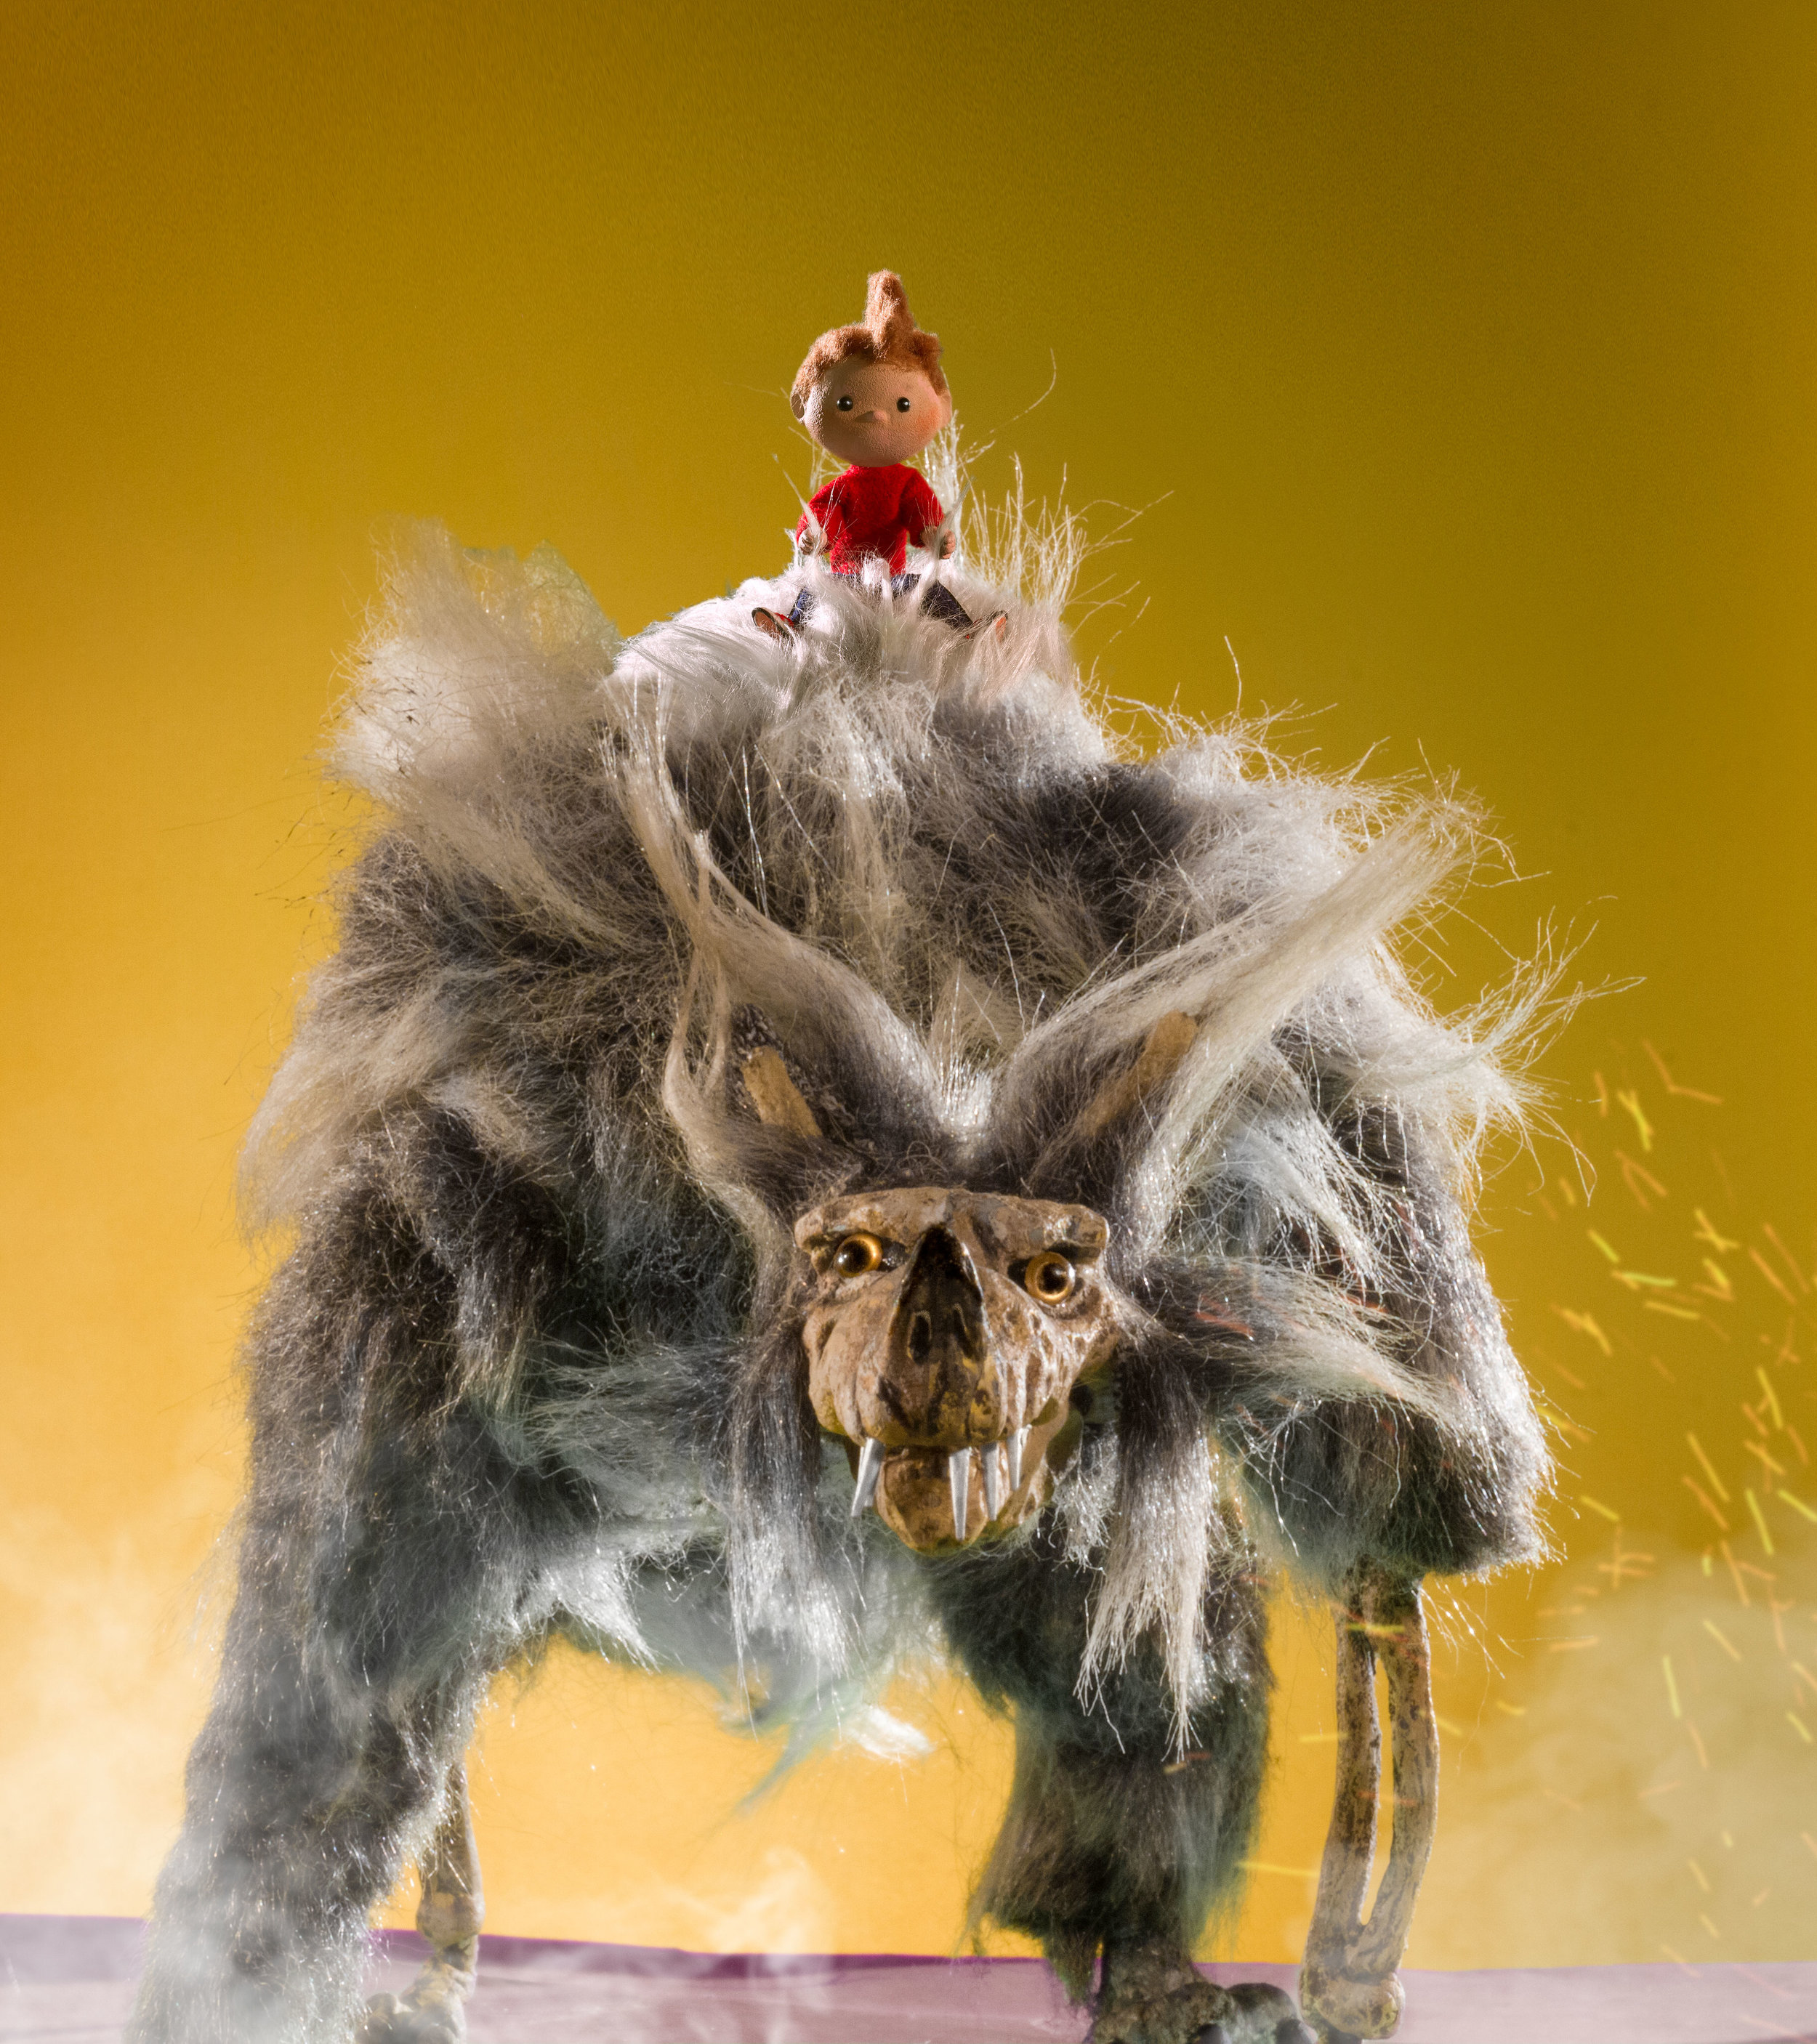 The boy riding a giant wolf.